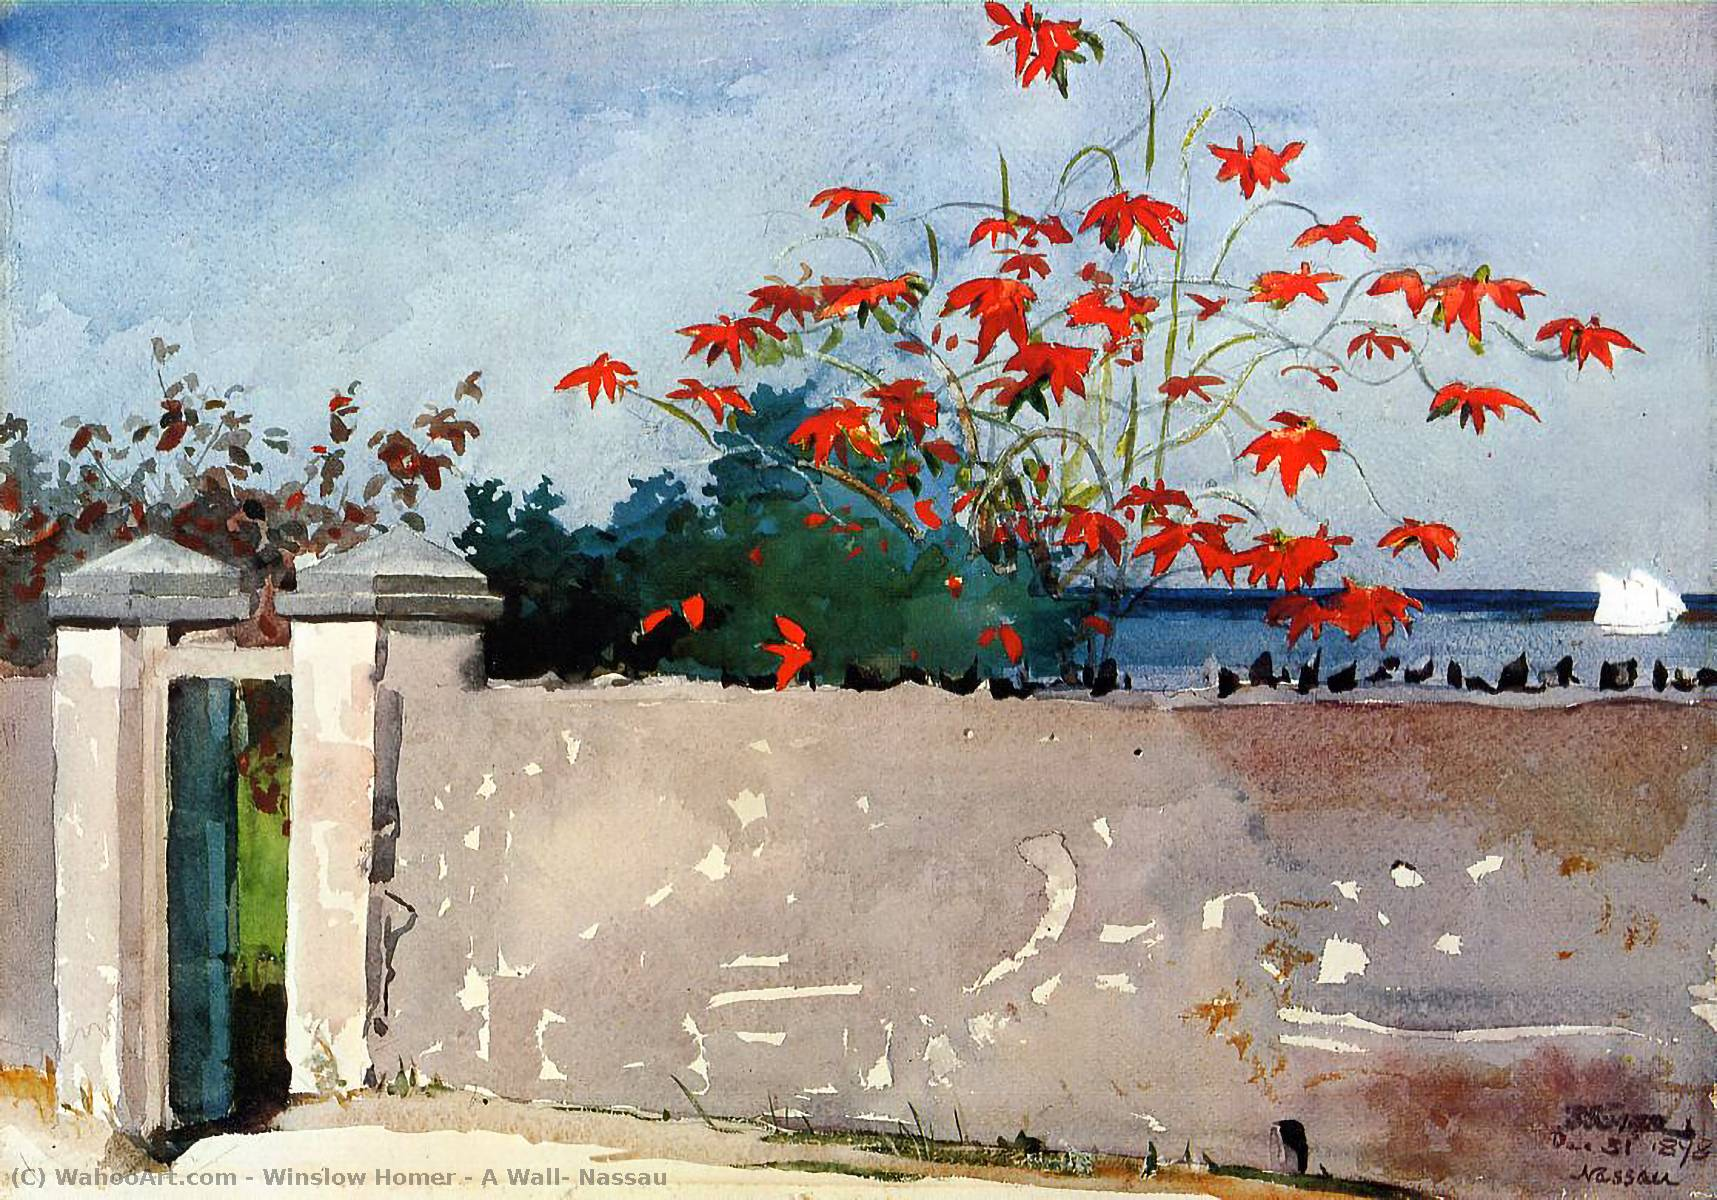 A Wall, Nassau, Watercolour by Winslow Homer (1836-1910, United States)